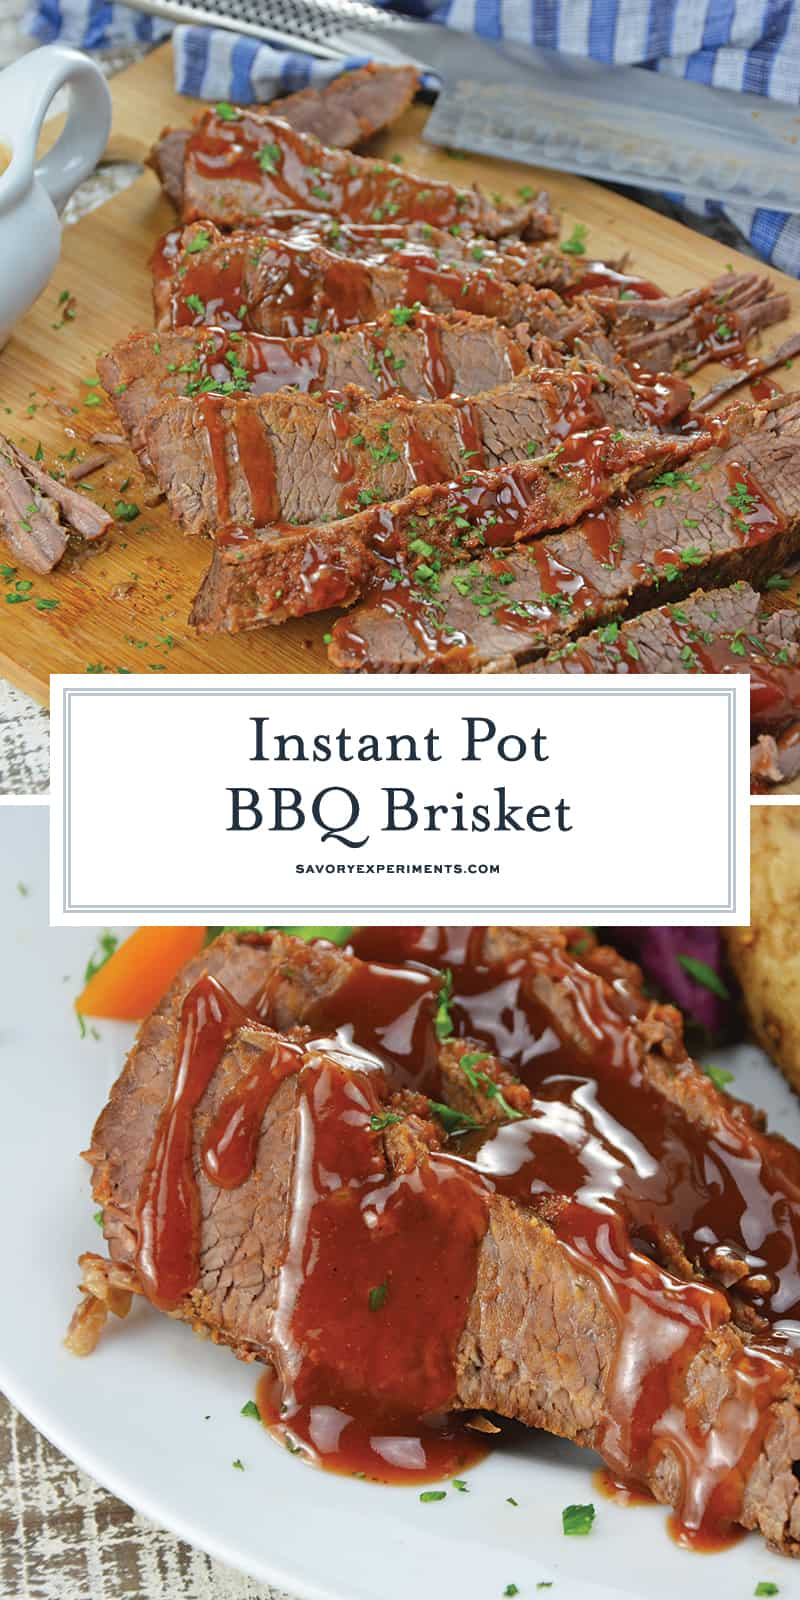 Instant Pot BBQ Brisket is the perfect dinner idea! Brisket will stay moist and offer loads of flavor.#instantpotrecipes #BBQbrisket #howtocookbrisket www.savoryexperiments.com